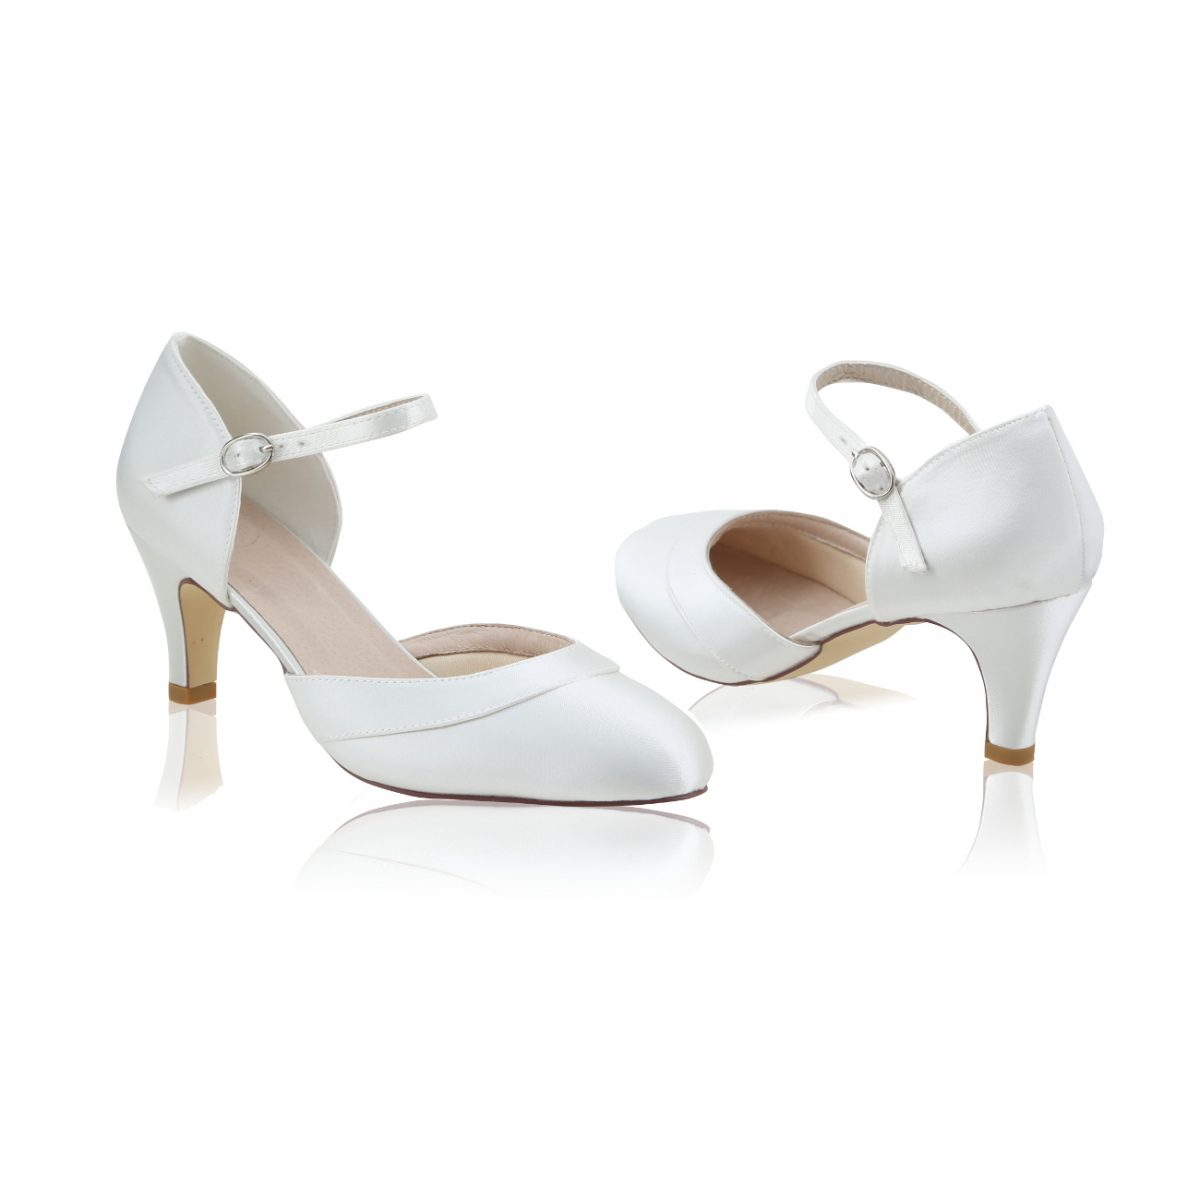 Perfect Bridal Elsa Shoes - Wide Fit Satin